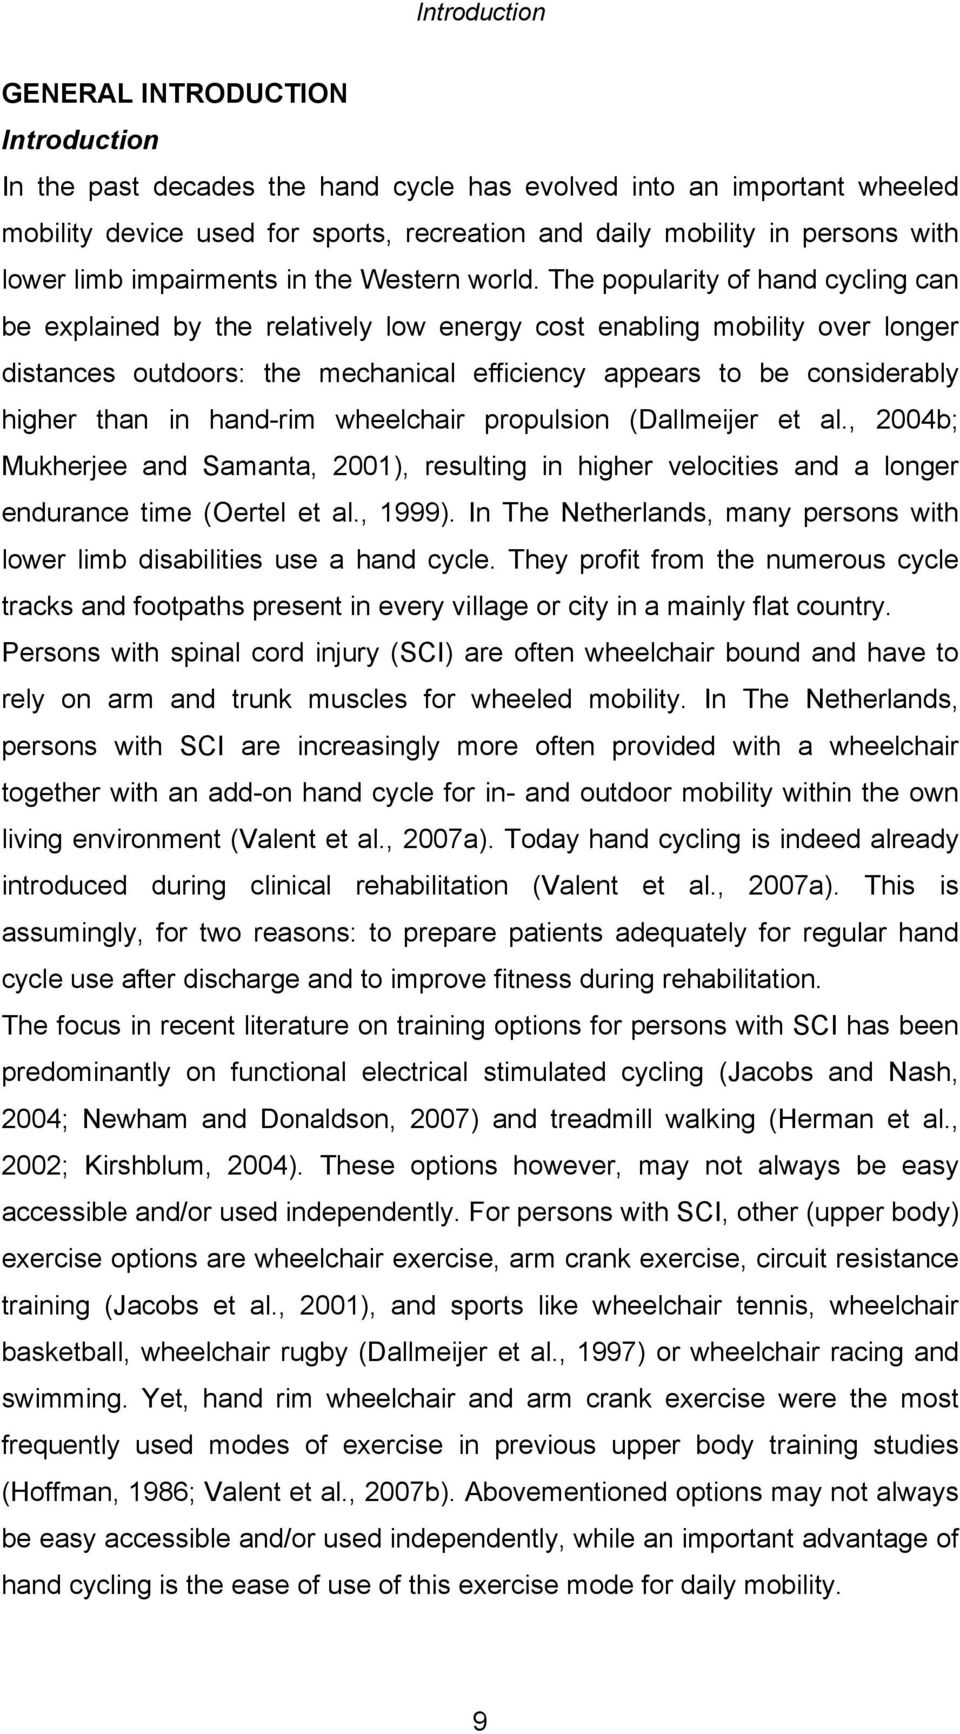 The popularity of hand cycling can be explained by the relatively low energy cost enabling mobility over longer distances outdoors: the mechanical efficiency appears to be considerably higher than in